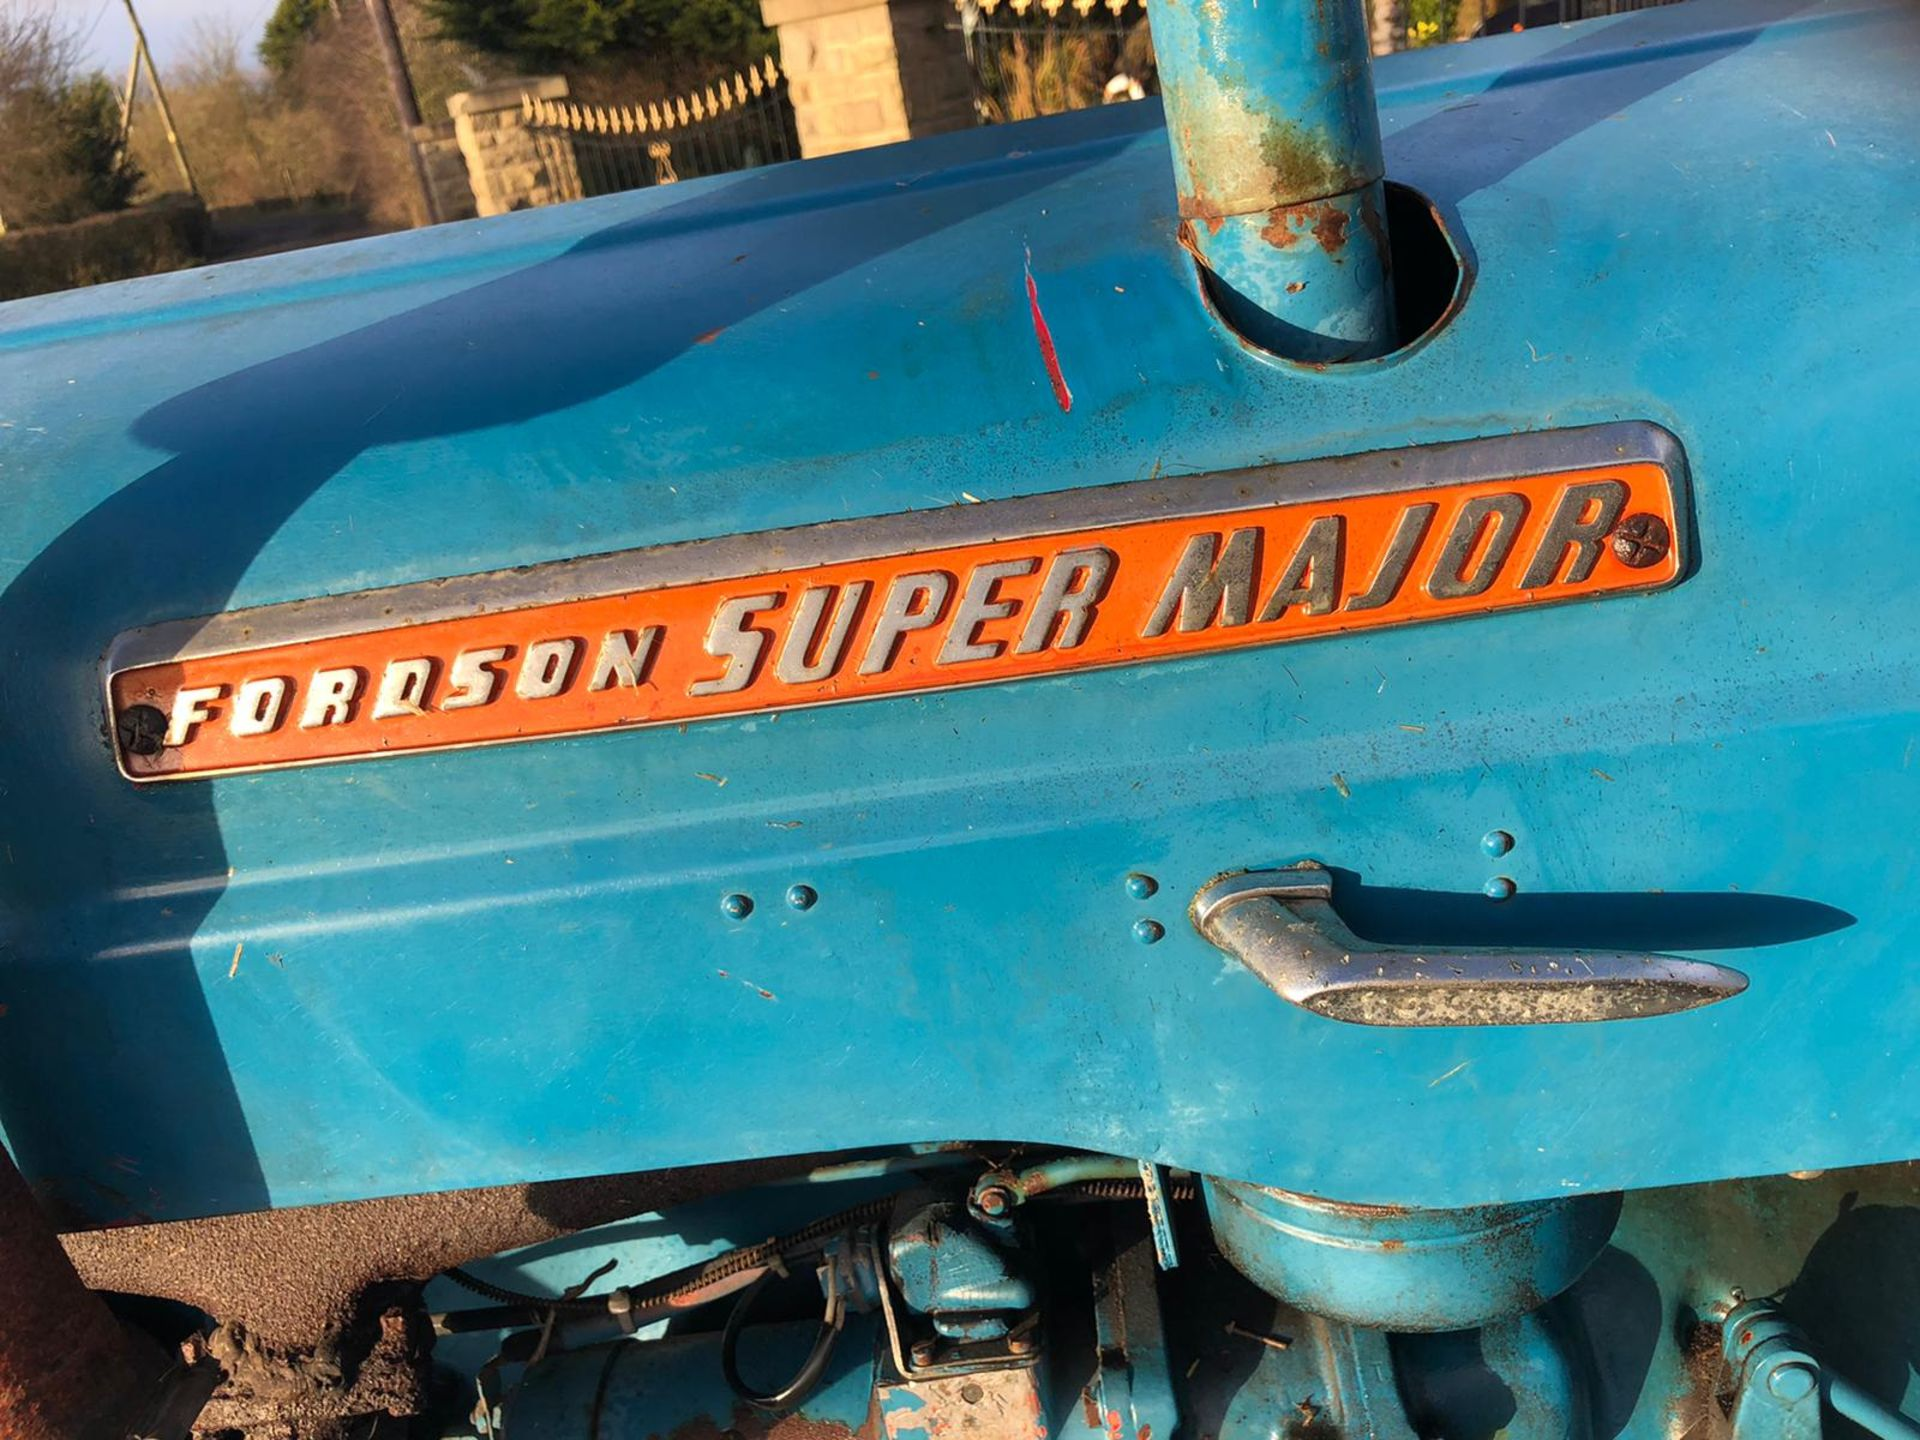 Lot 82 - FORDSON SUPER MAJOR VINTAGE TRACTOR, RUNS AND WORKS WELL *PLUS VAT*